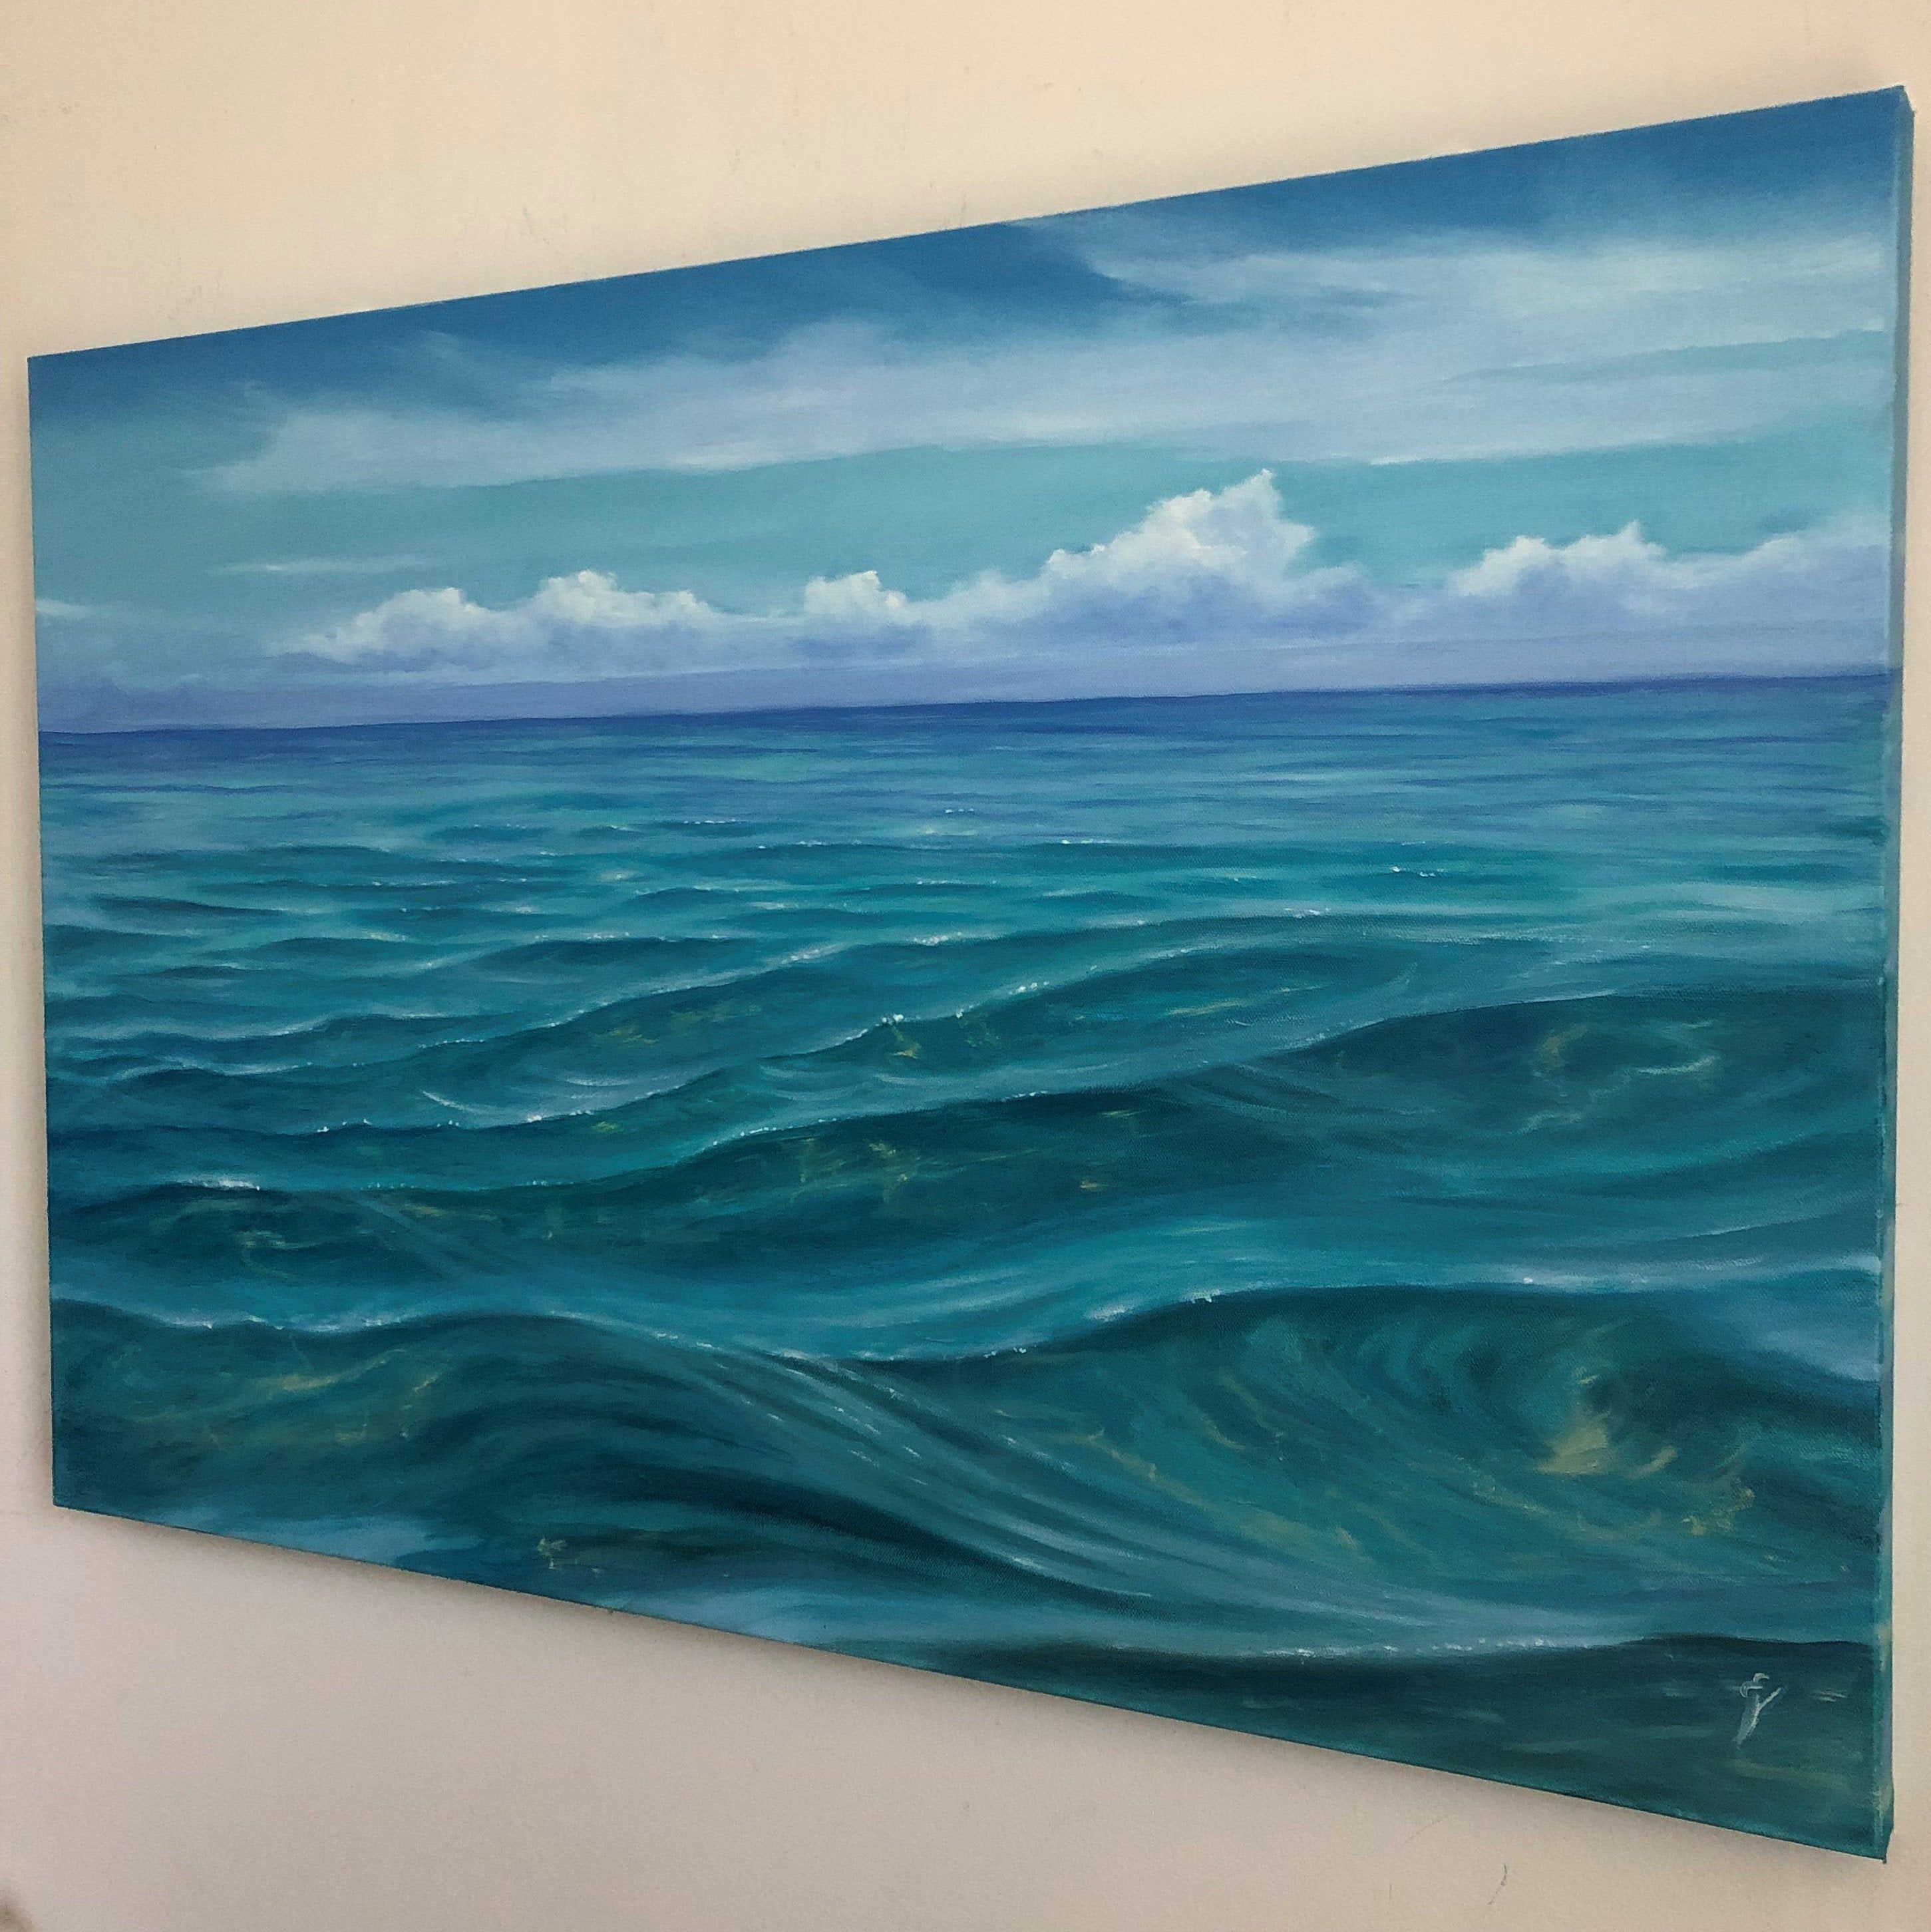 Embracing Tranquility Large Original Turquoise Clear Water Oil Painting On Canvas By Eva Volf Oil Painting Landscape Ocean Painting Oil Painting On Canvas